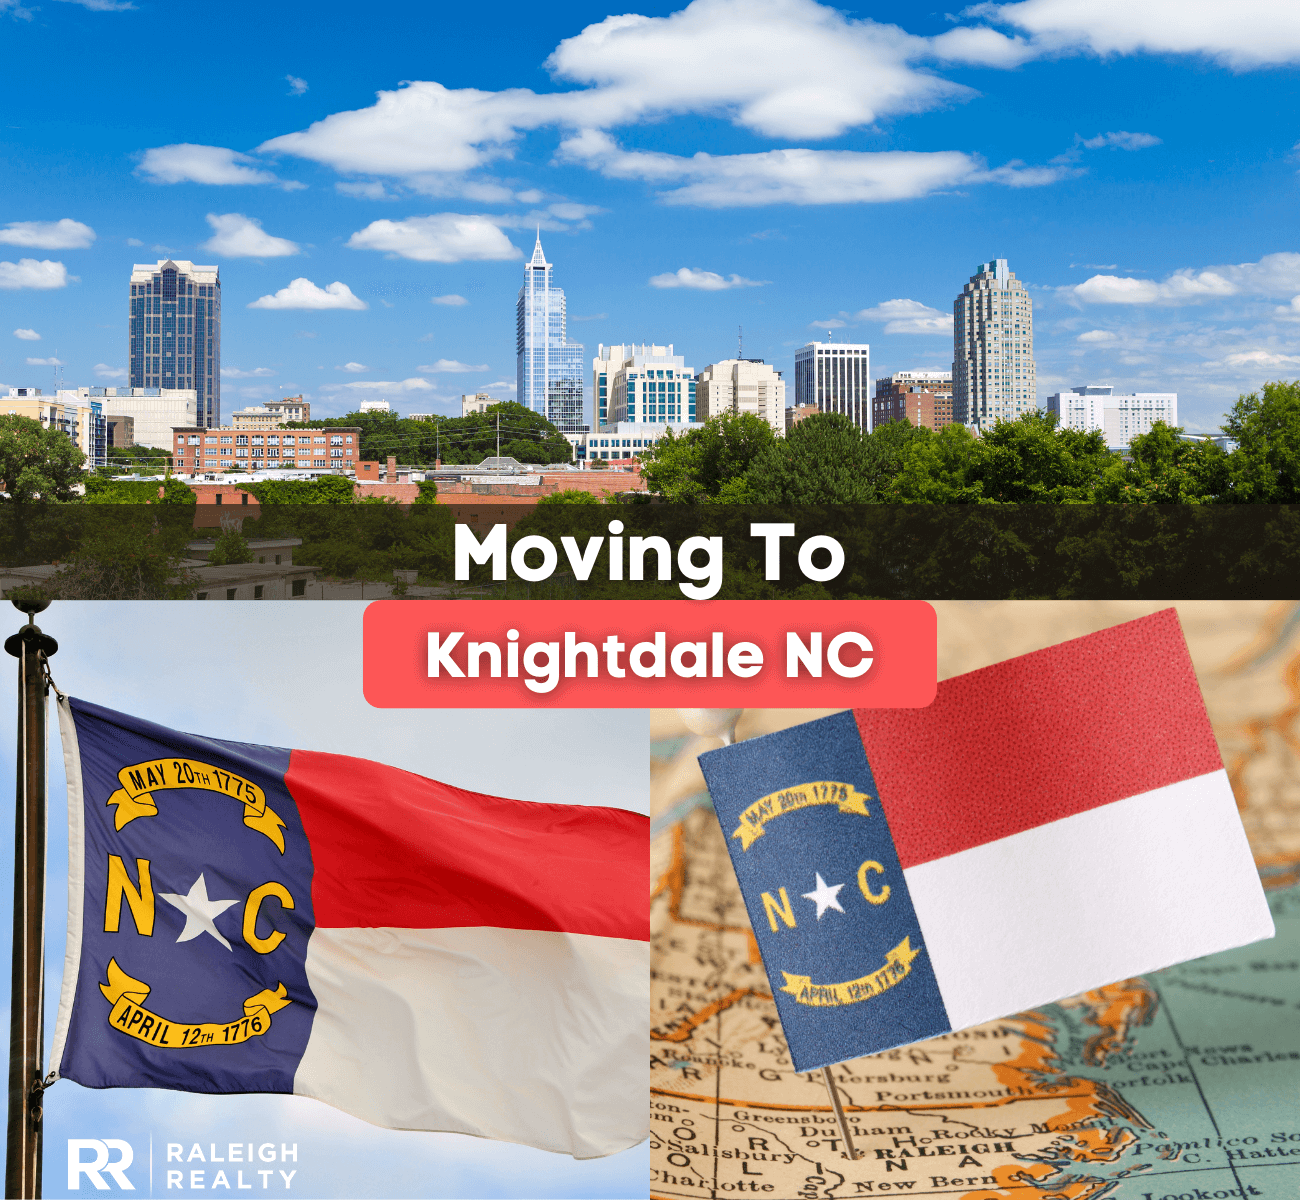 Moving too Knightdale, NC - What is it like living in Knightdale, North Carolina?